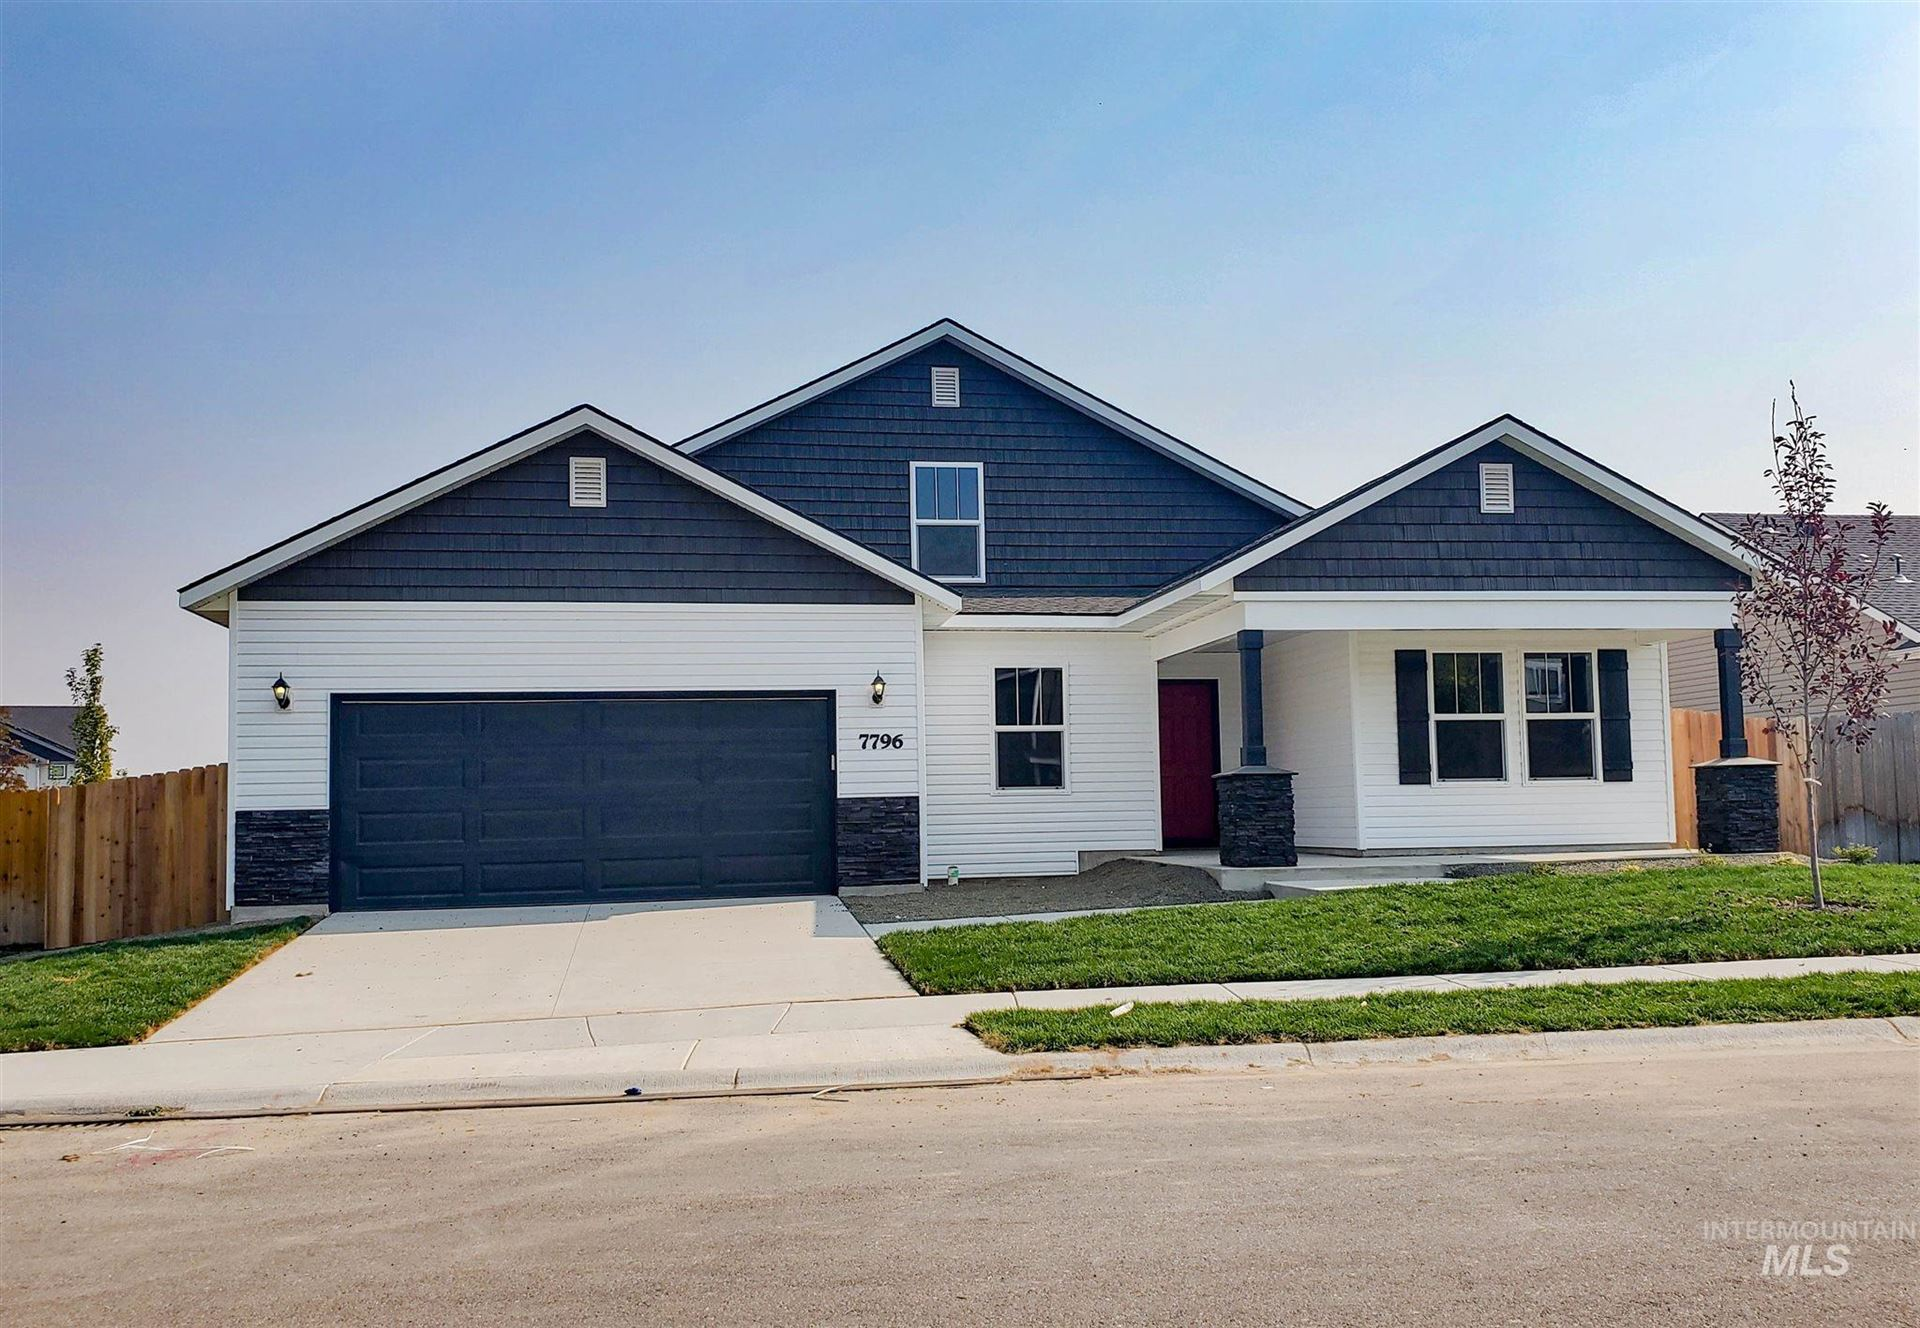 7796 S Foremast Ave., Boise, ID 83709 - MLS#: 98783664